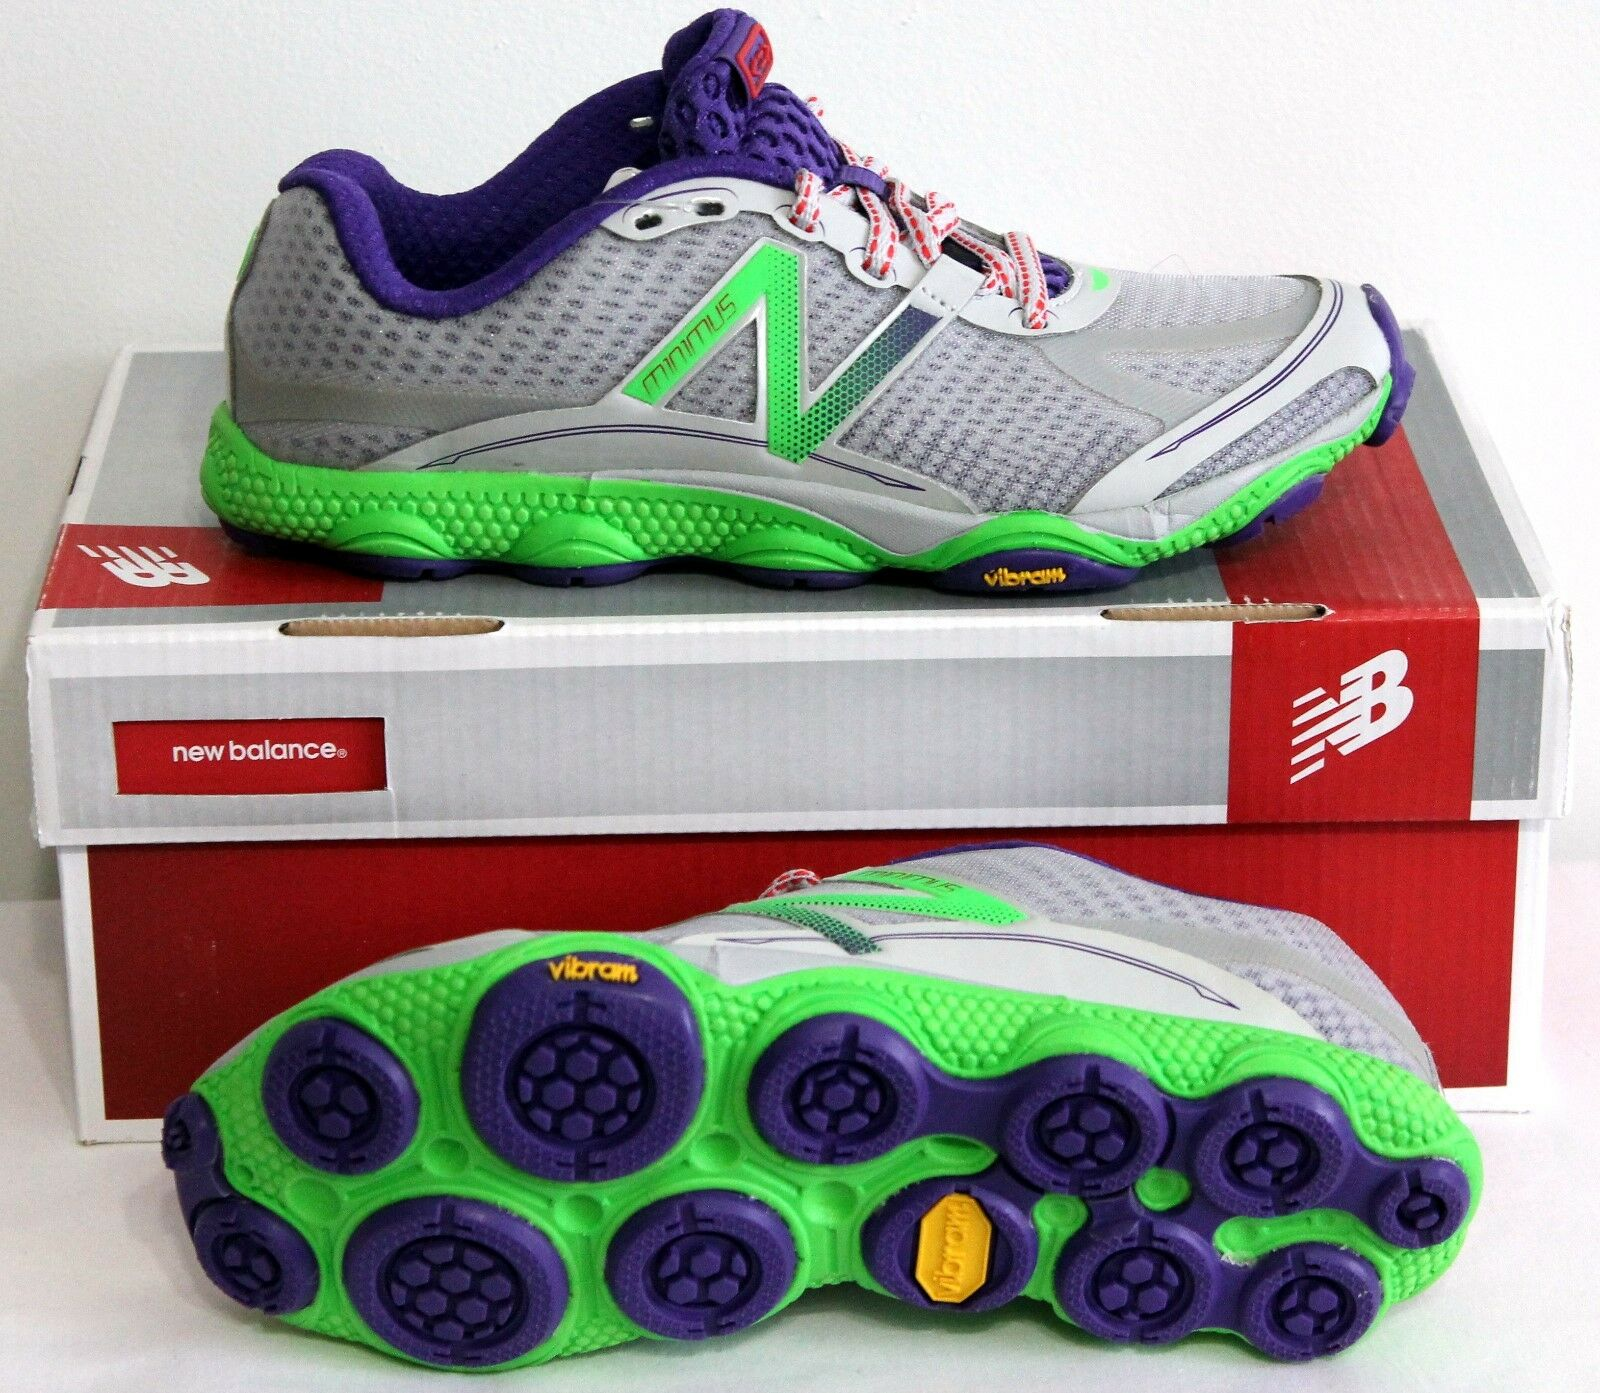 New Balance W1010 Women's Sneakers Comfort Running Athletic Sport Classic Bright